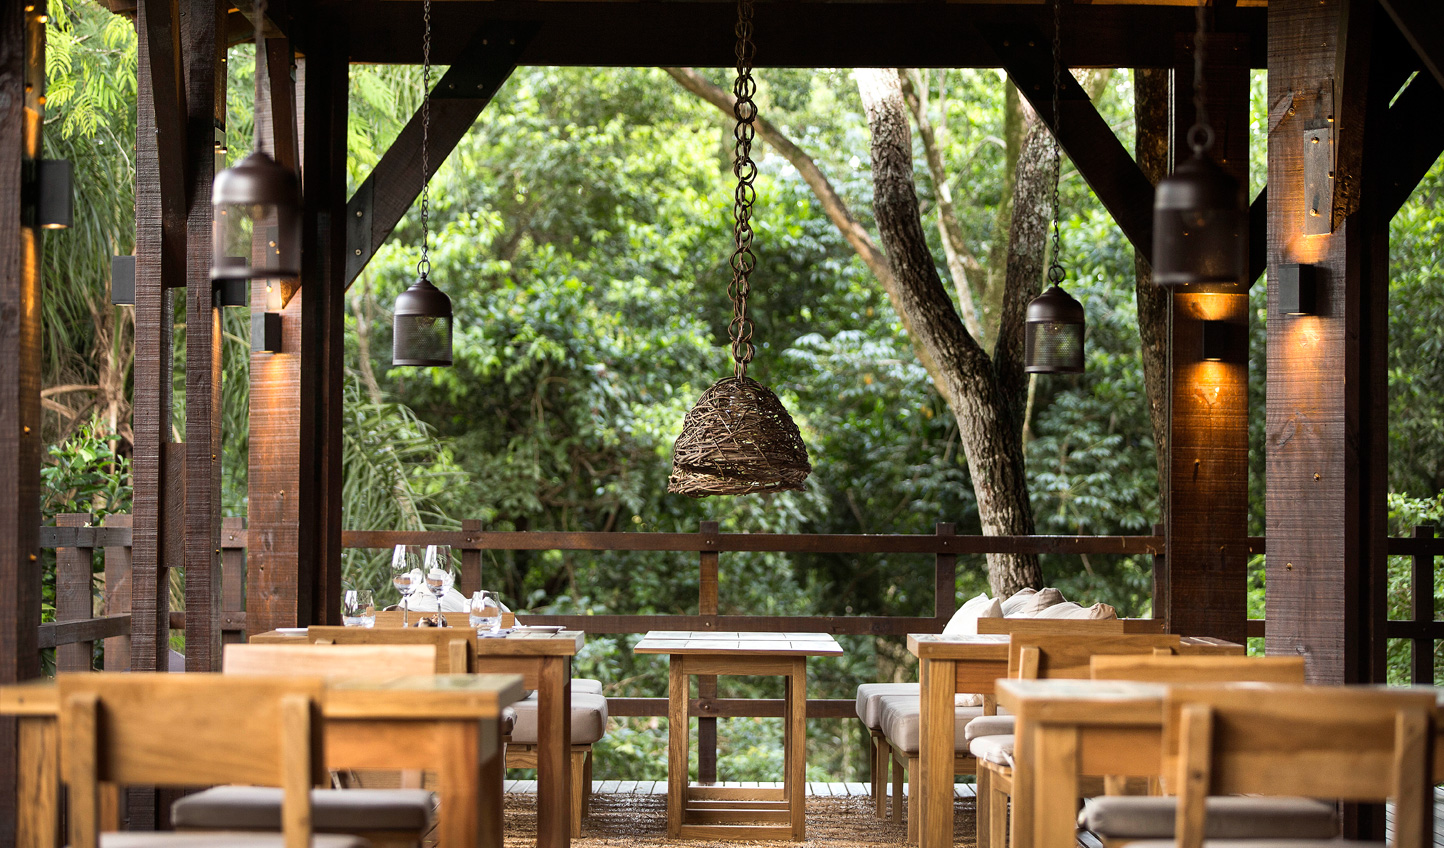 Eat delicious seasonal produce in the heart of the rainforest